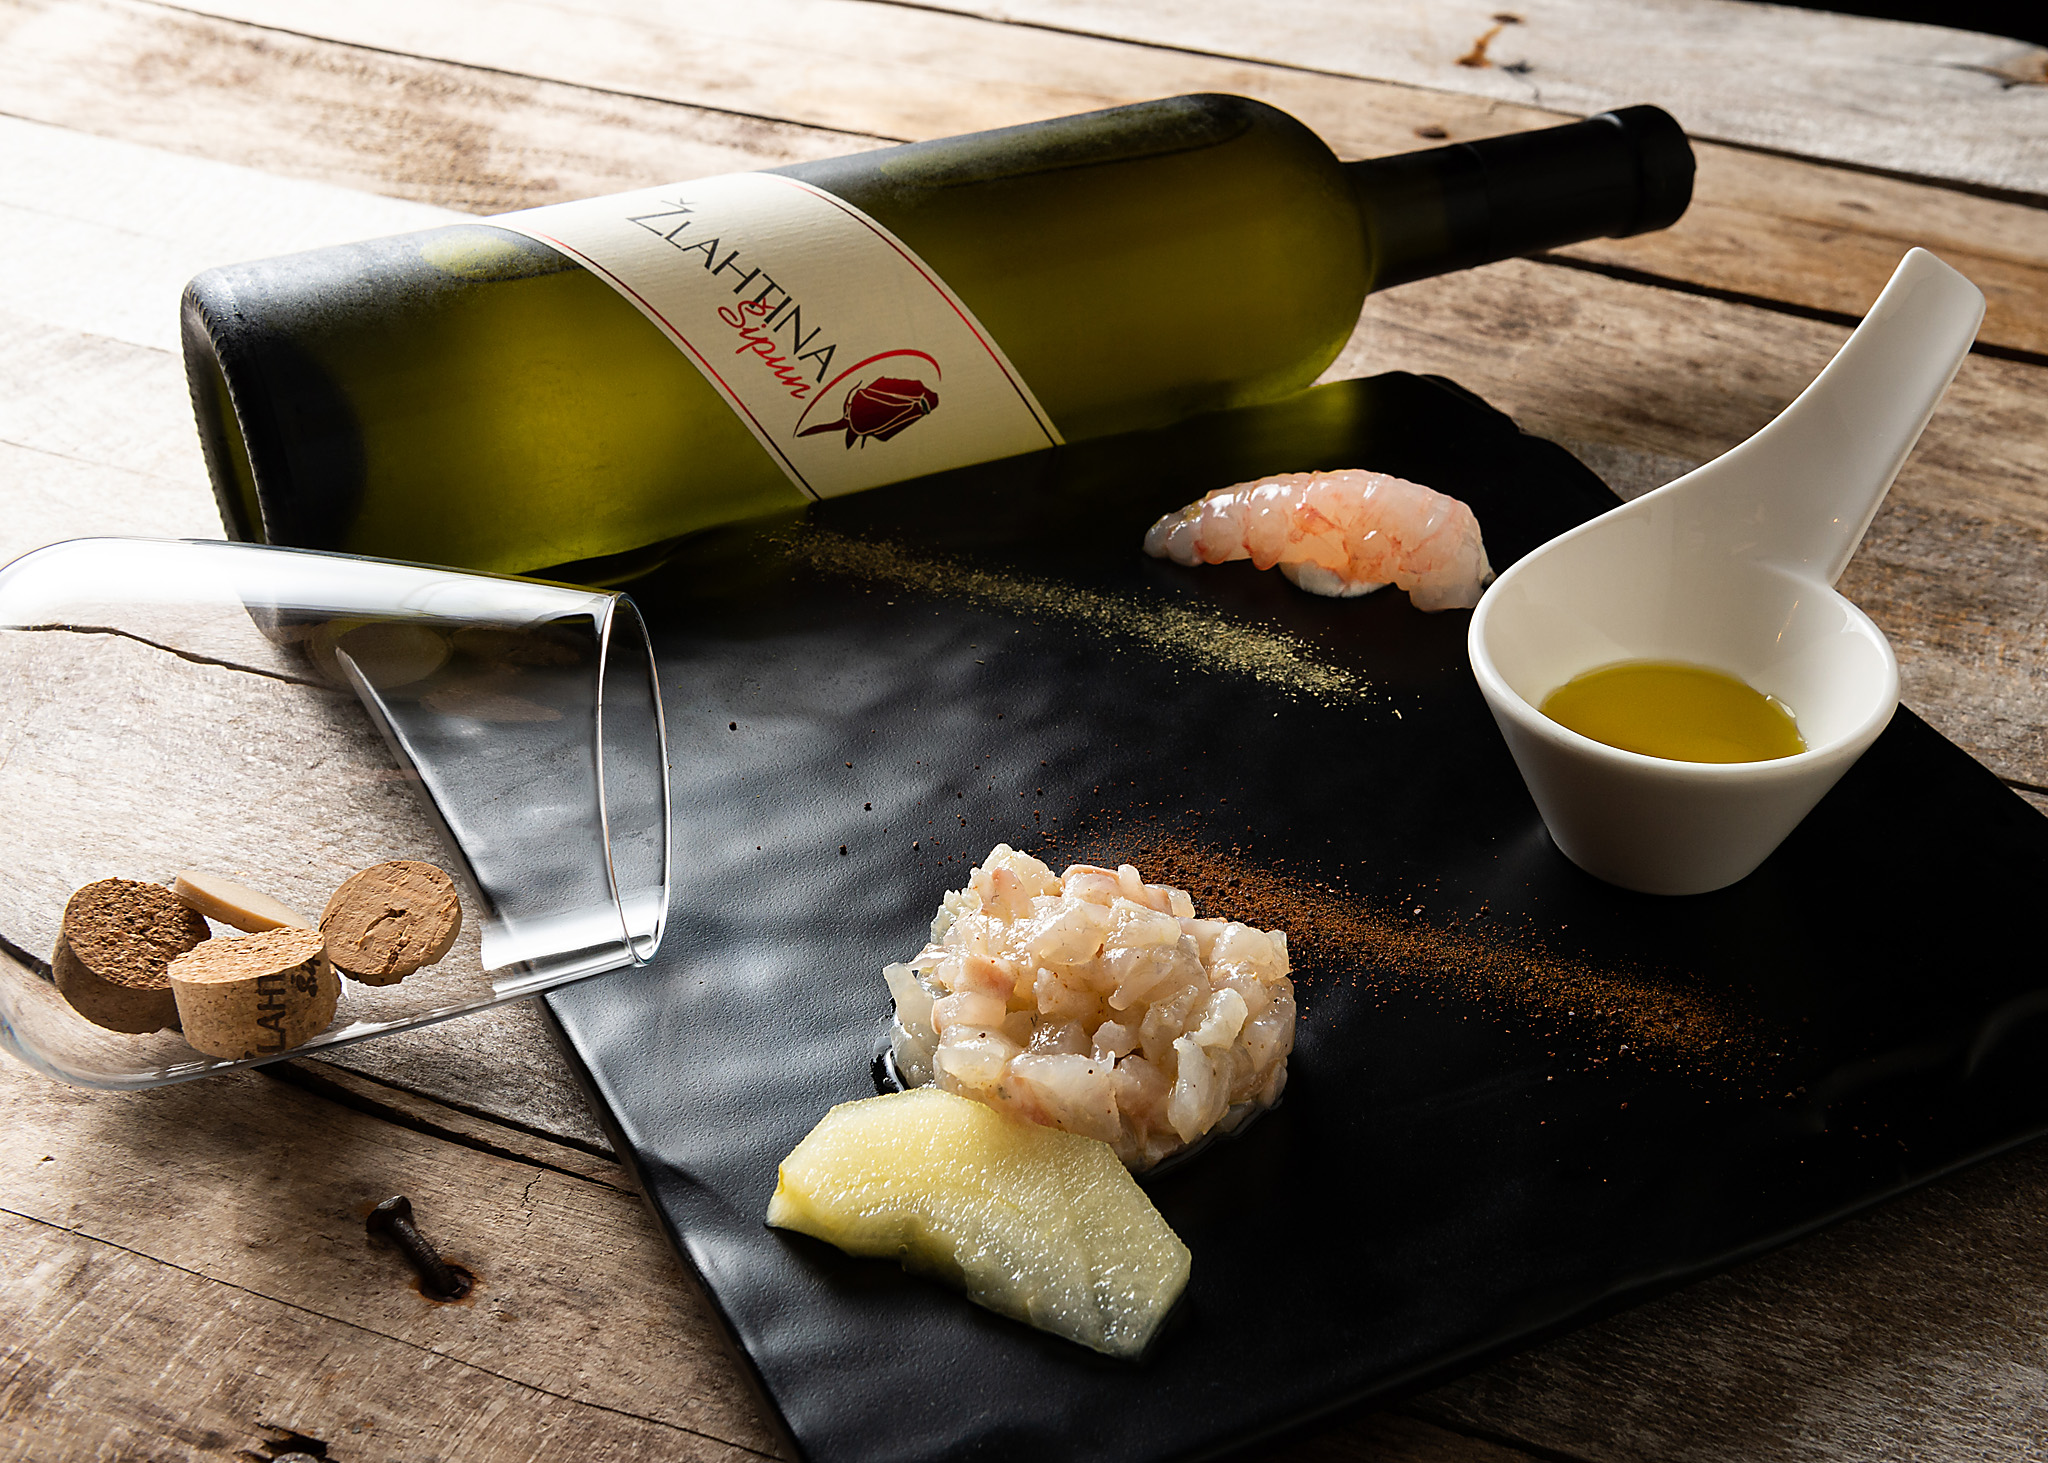 hren | plethora of creativity // Šipun winery product photography at Rivica restaurant